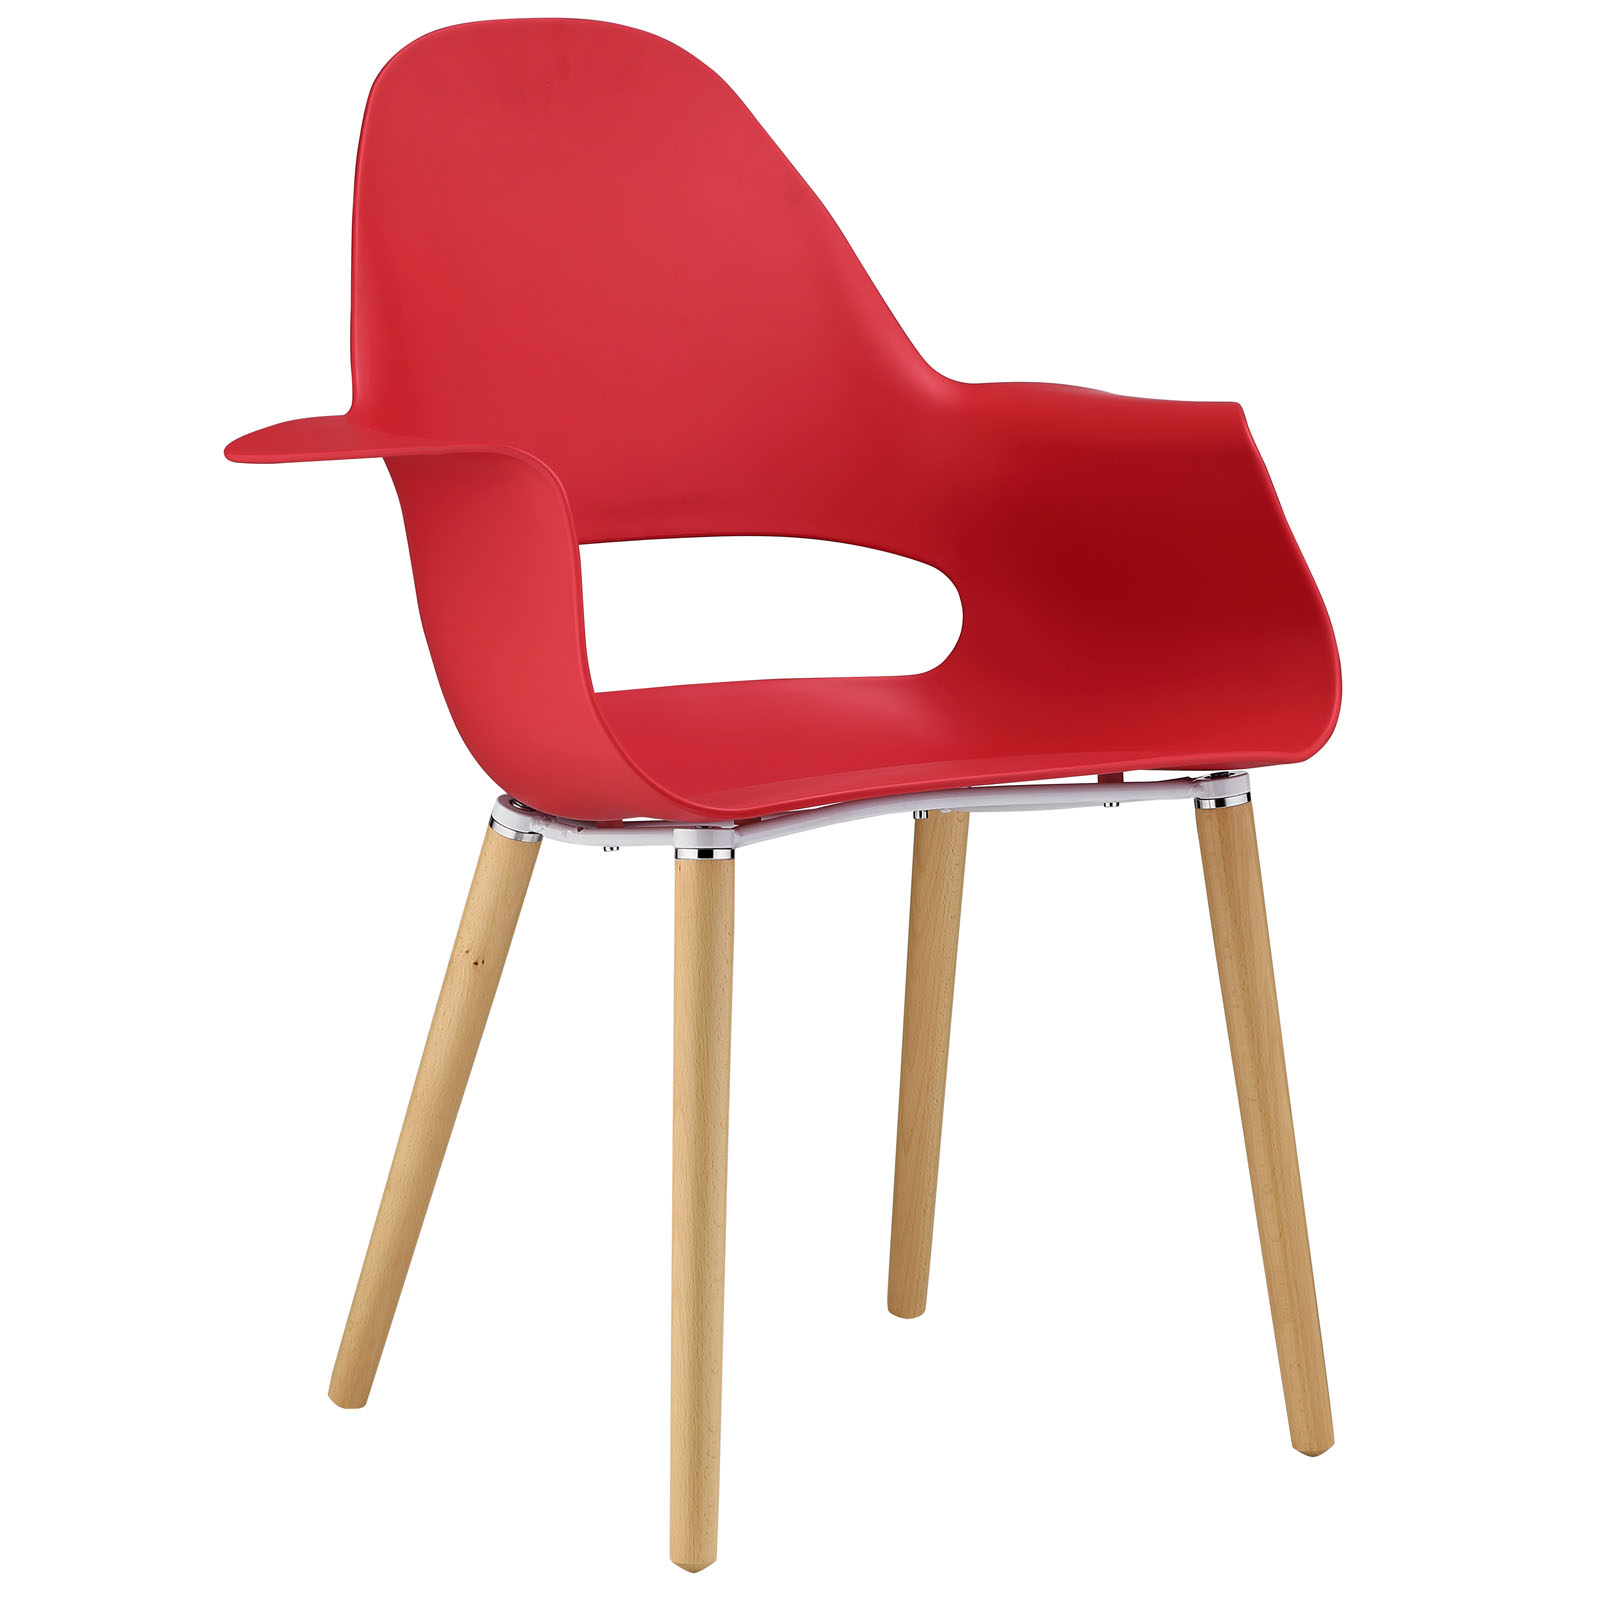 Modern Contemporary Dining Armchair, Red Plastic by